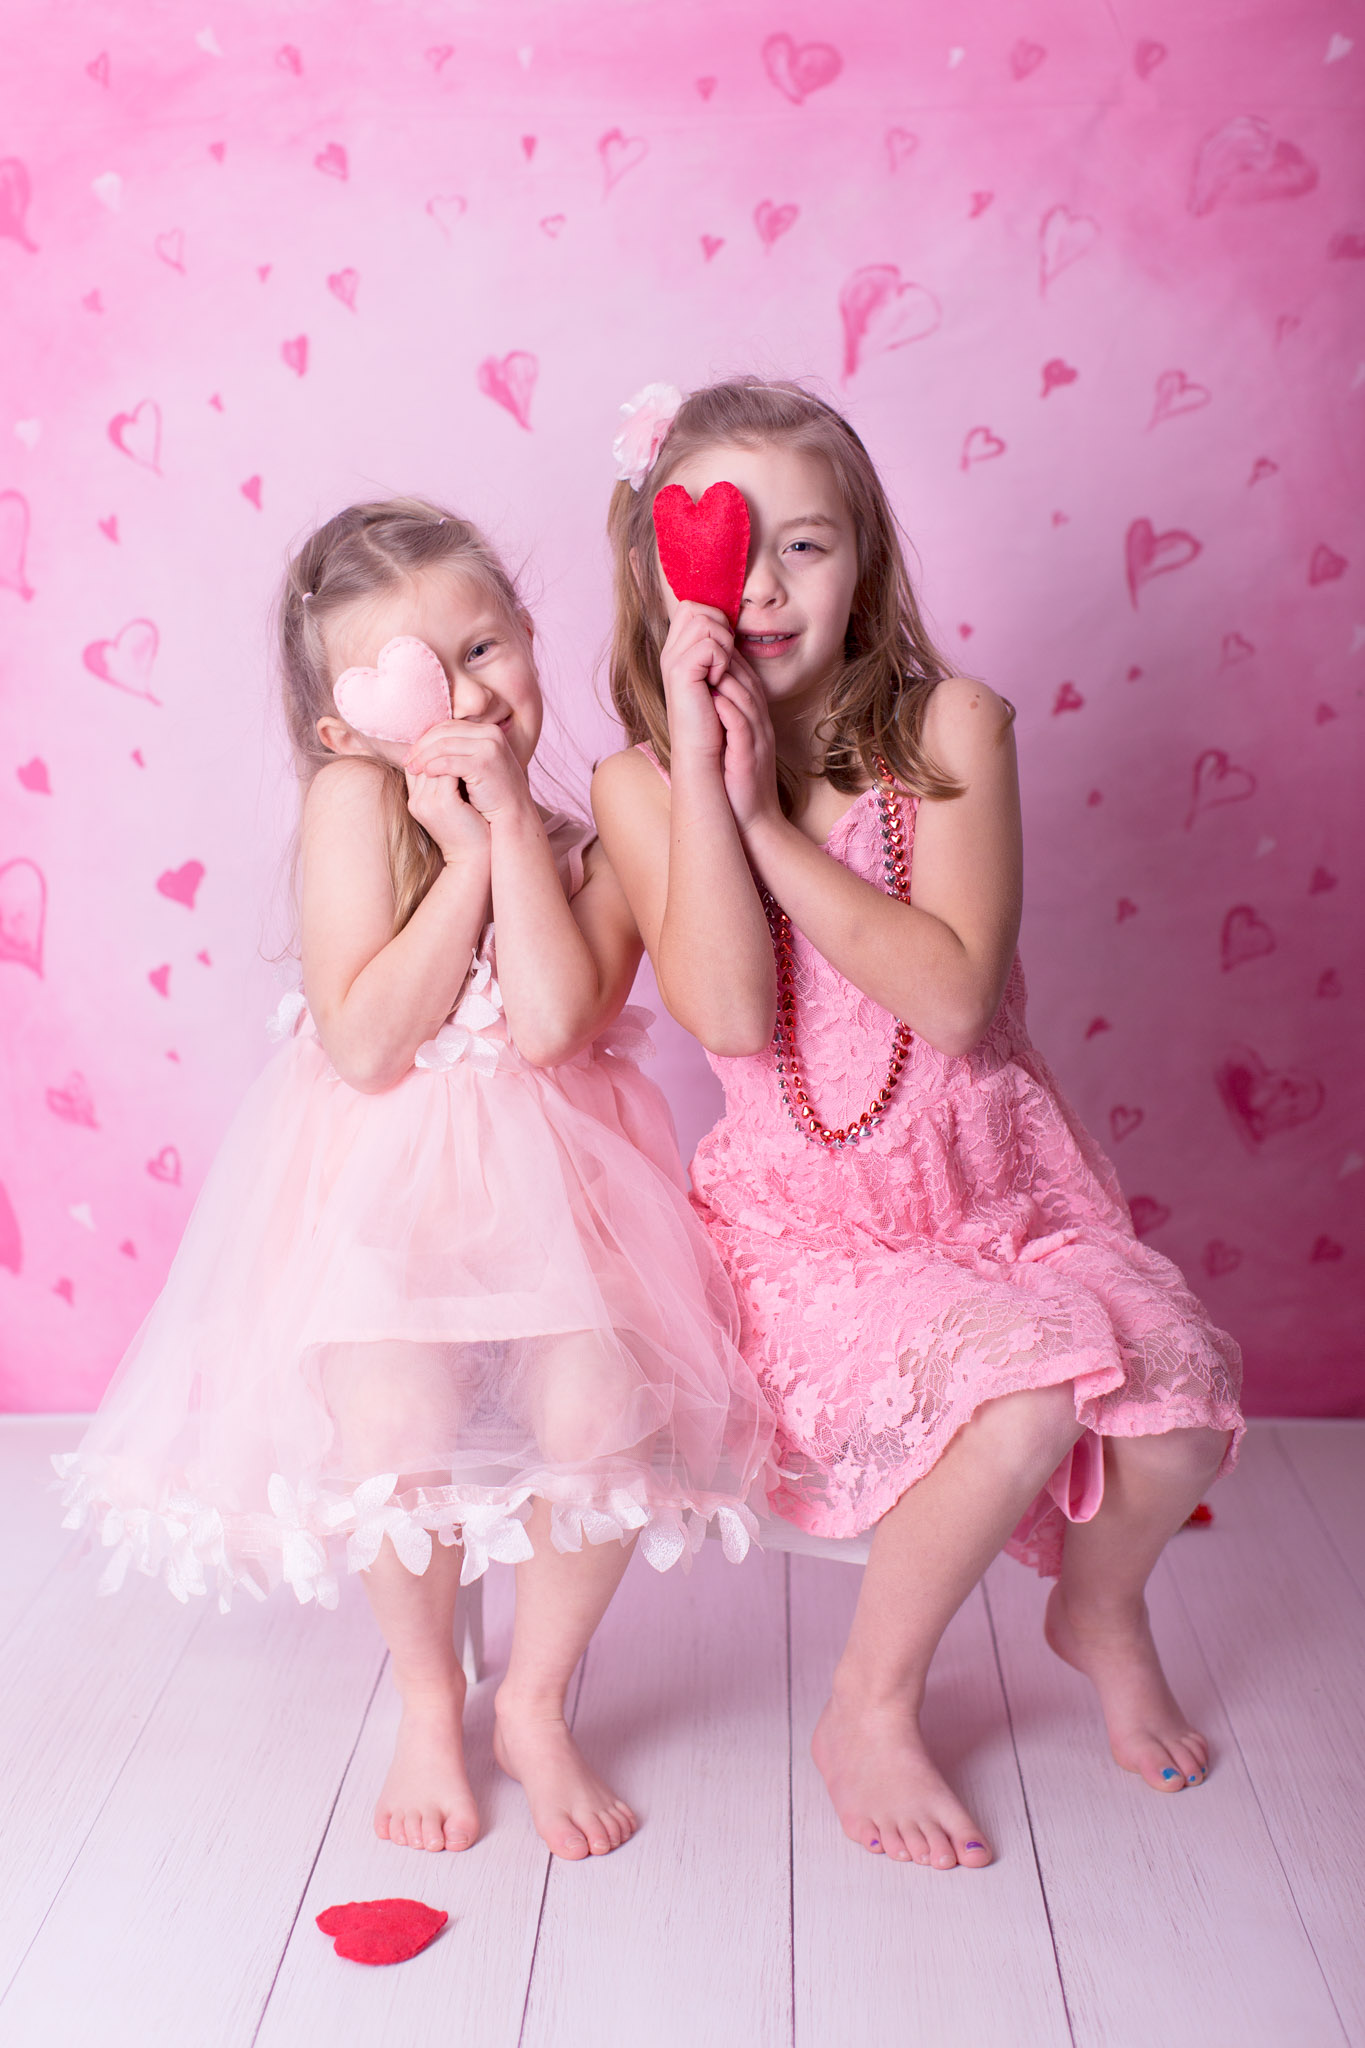 Image of two girls posing for Valentine's day session in pink dresses